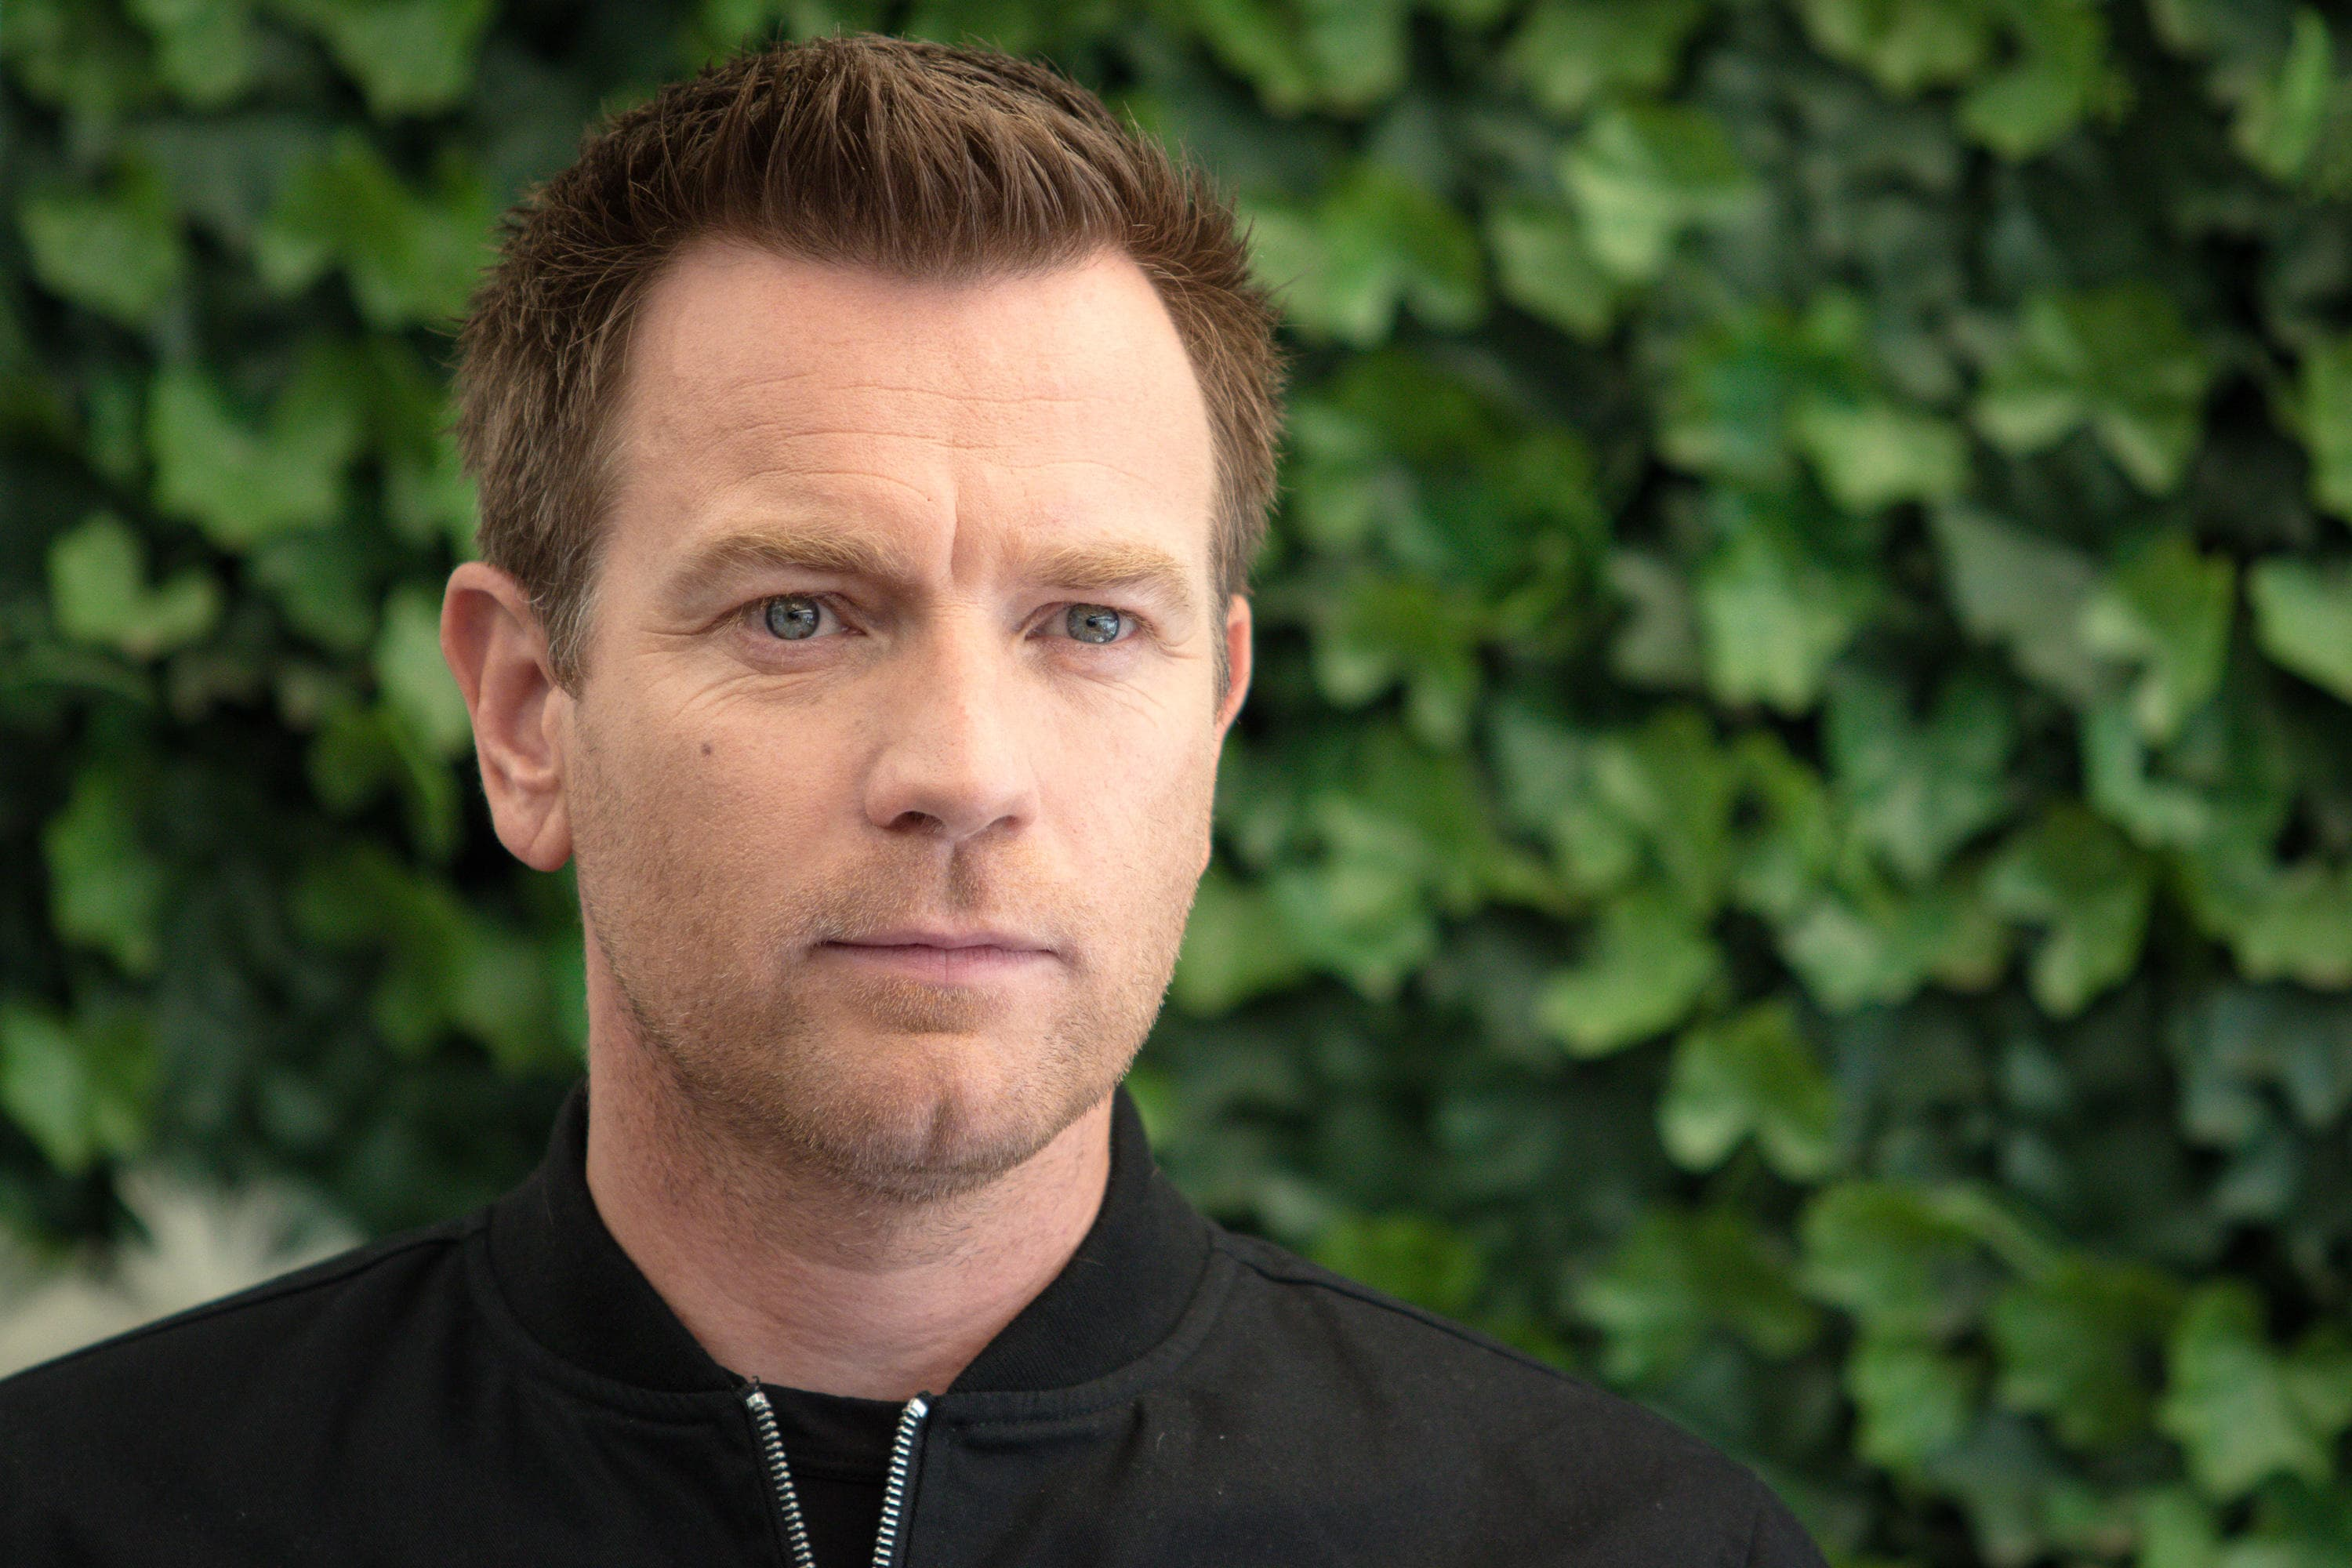 Ewan McGregor is playing grown-up Danny Terrance in an upcoming Stephen King-based movie. (Photo: WENN)